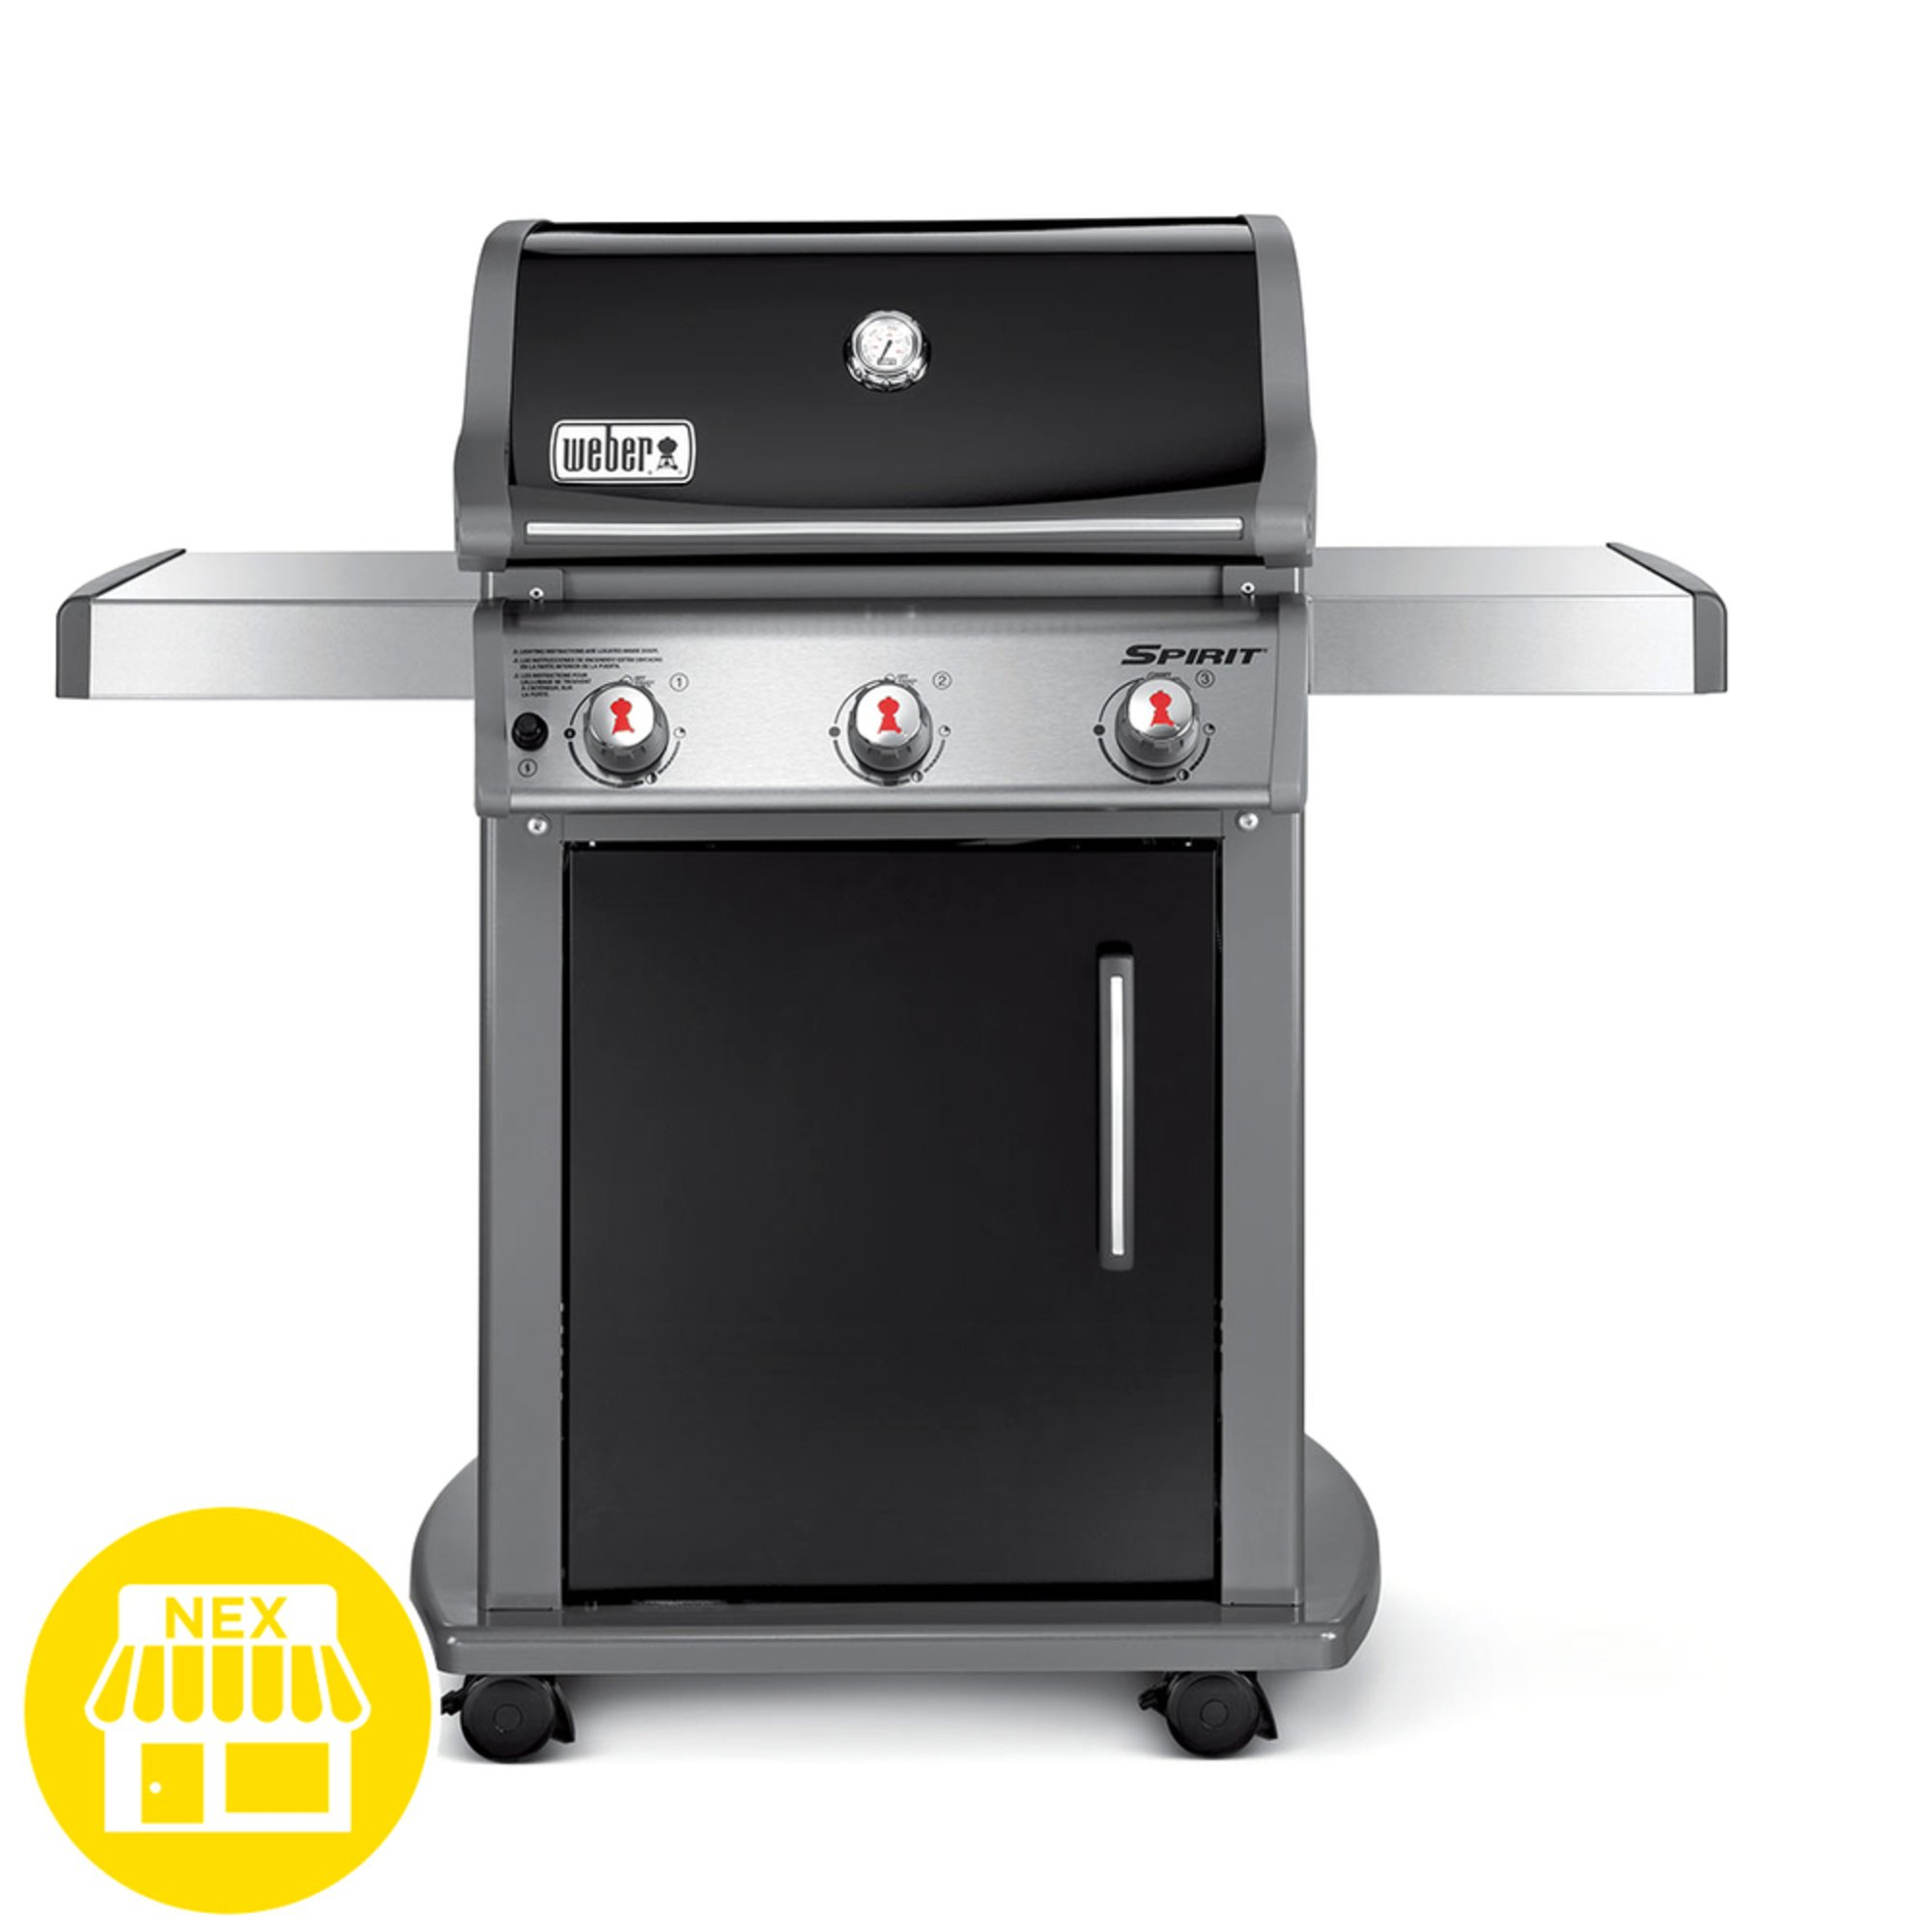 weber spirit e 310 3 burner gas grill gas grills. Black Bedroom Furniture Sets. Home Design Ideas